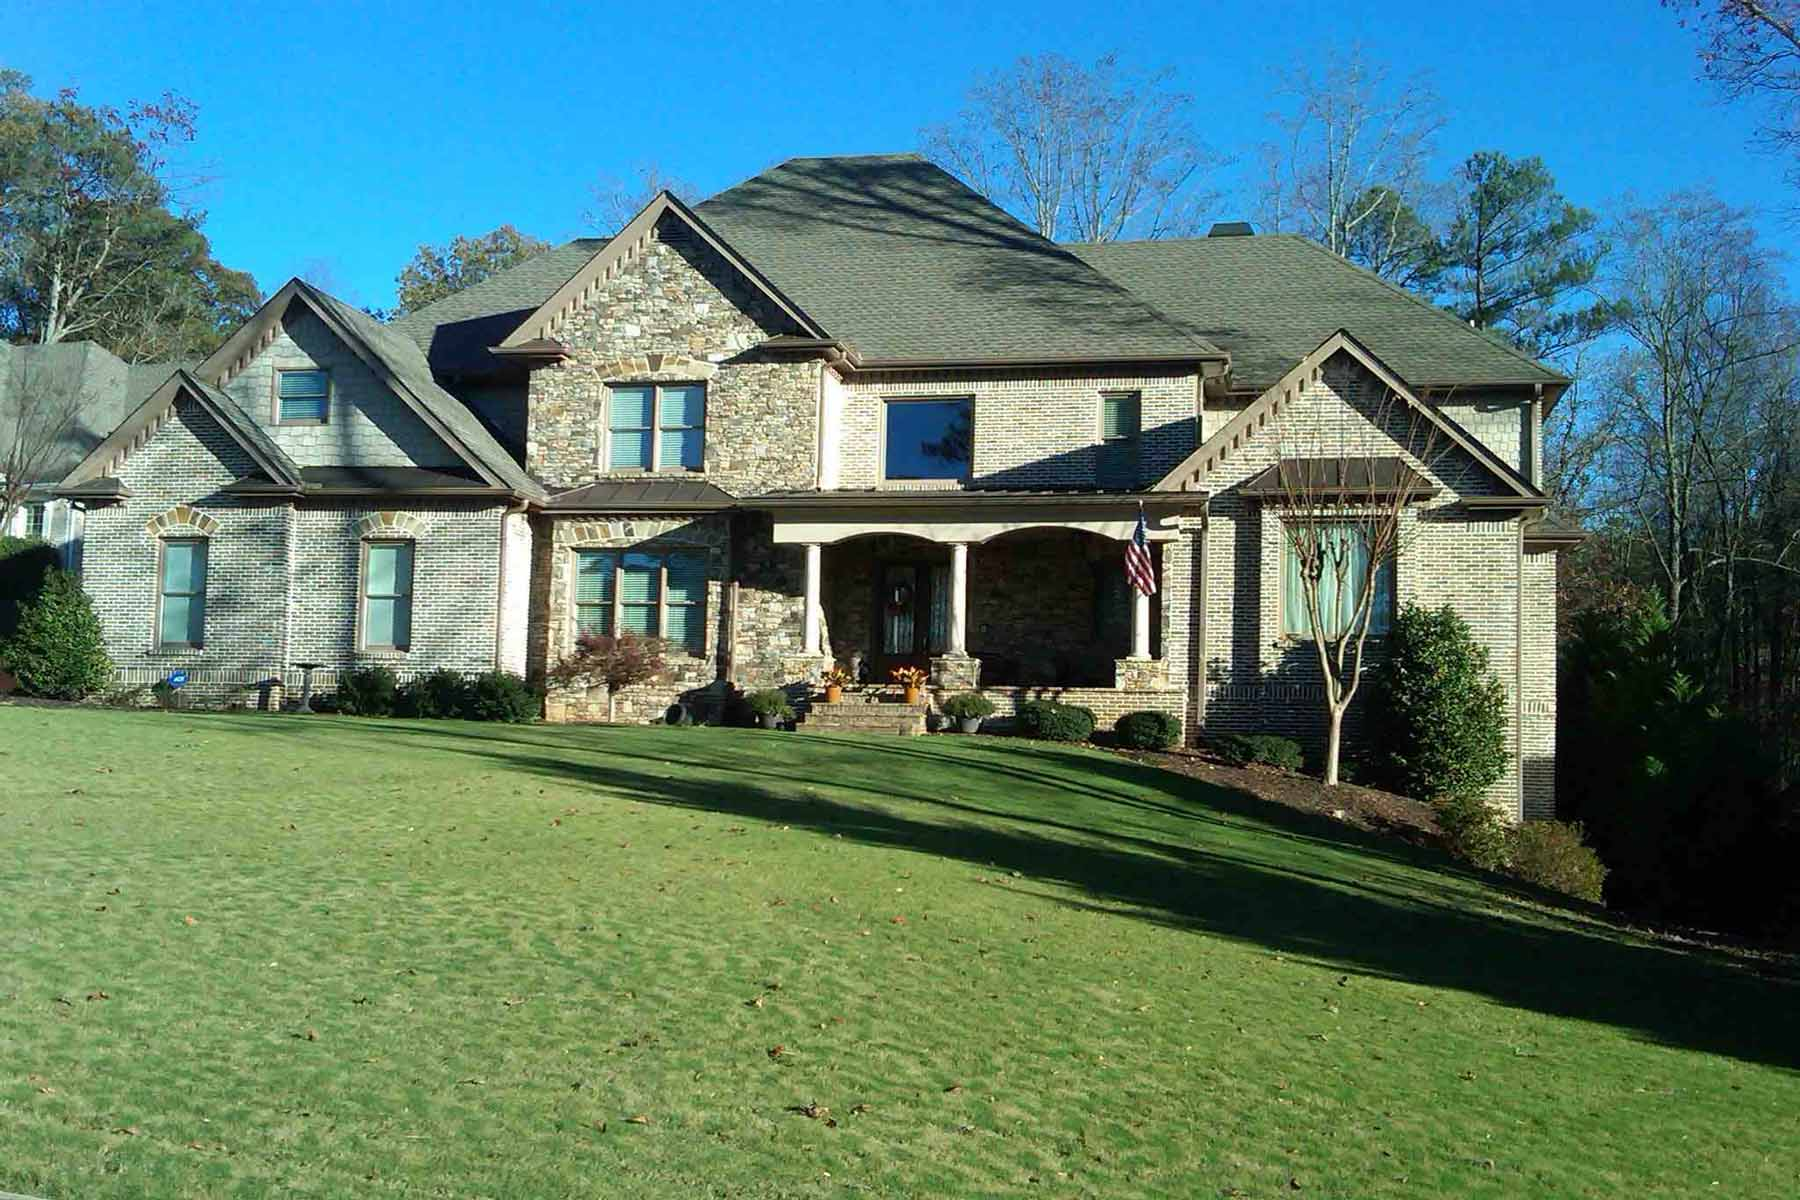 Single Family Home for Sale at Gorgeous 6 Bedroom Home on 1.3 acres in Lake Charles Estates 1025 Wordsworth Drive Roswell, Georgia, 30075 United States